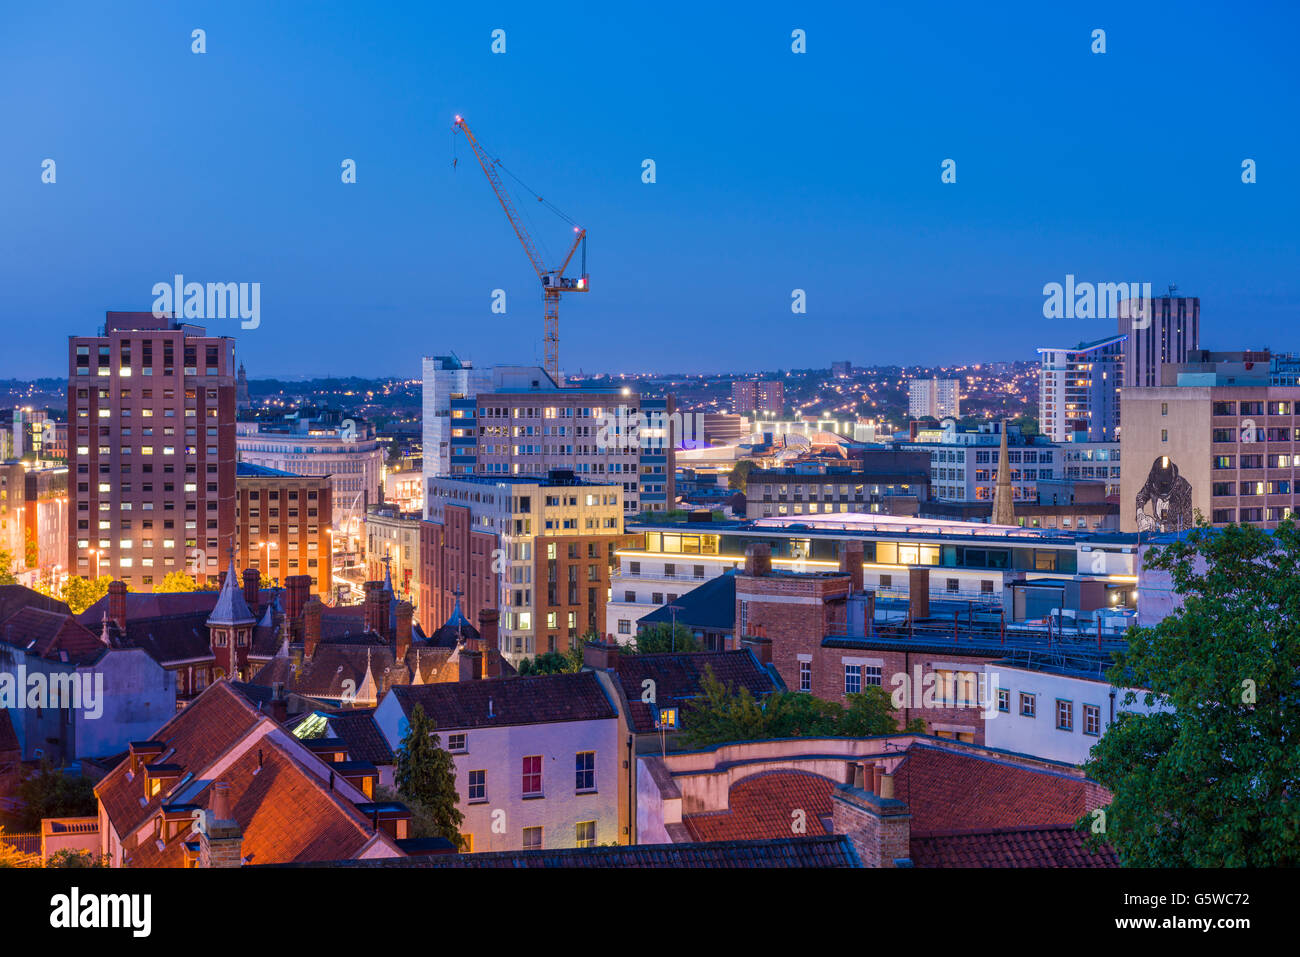 View over the City of Bristol skyline at dusk, England. - Stock Image